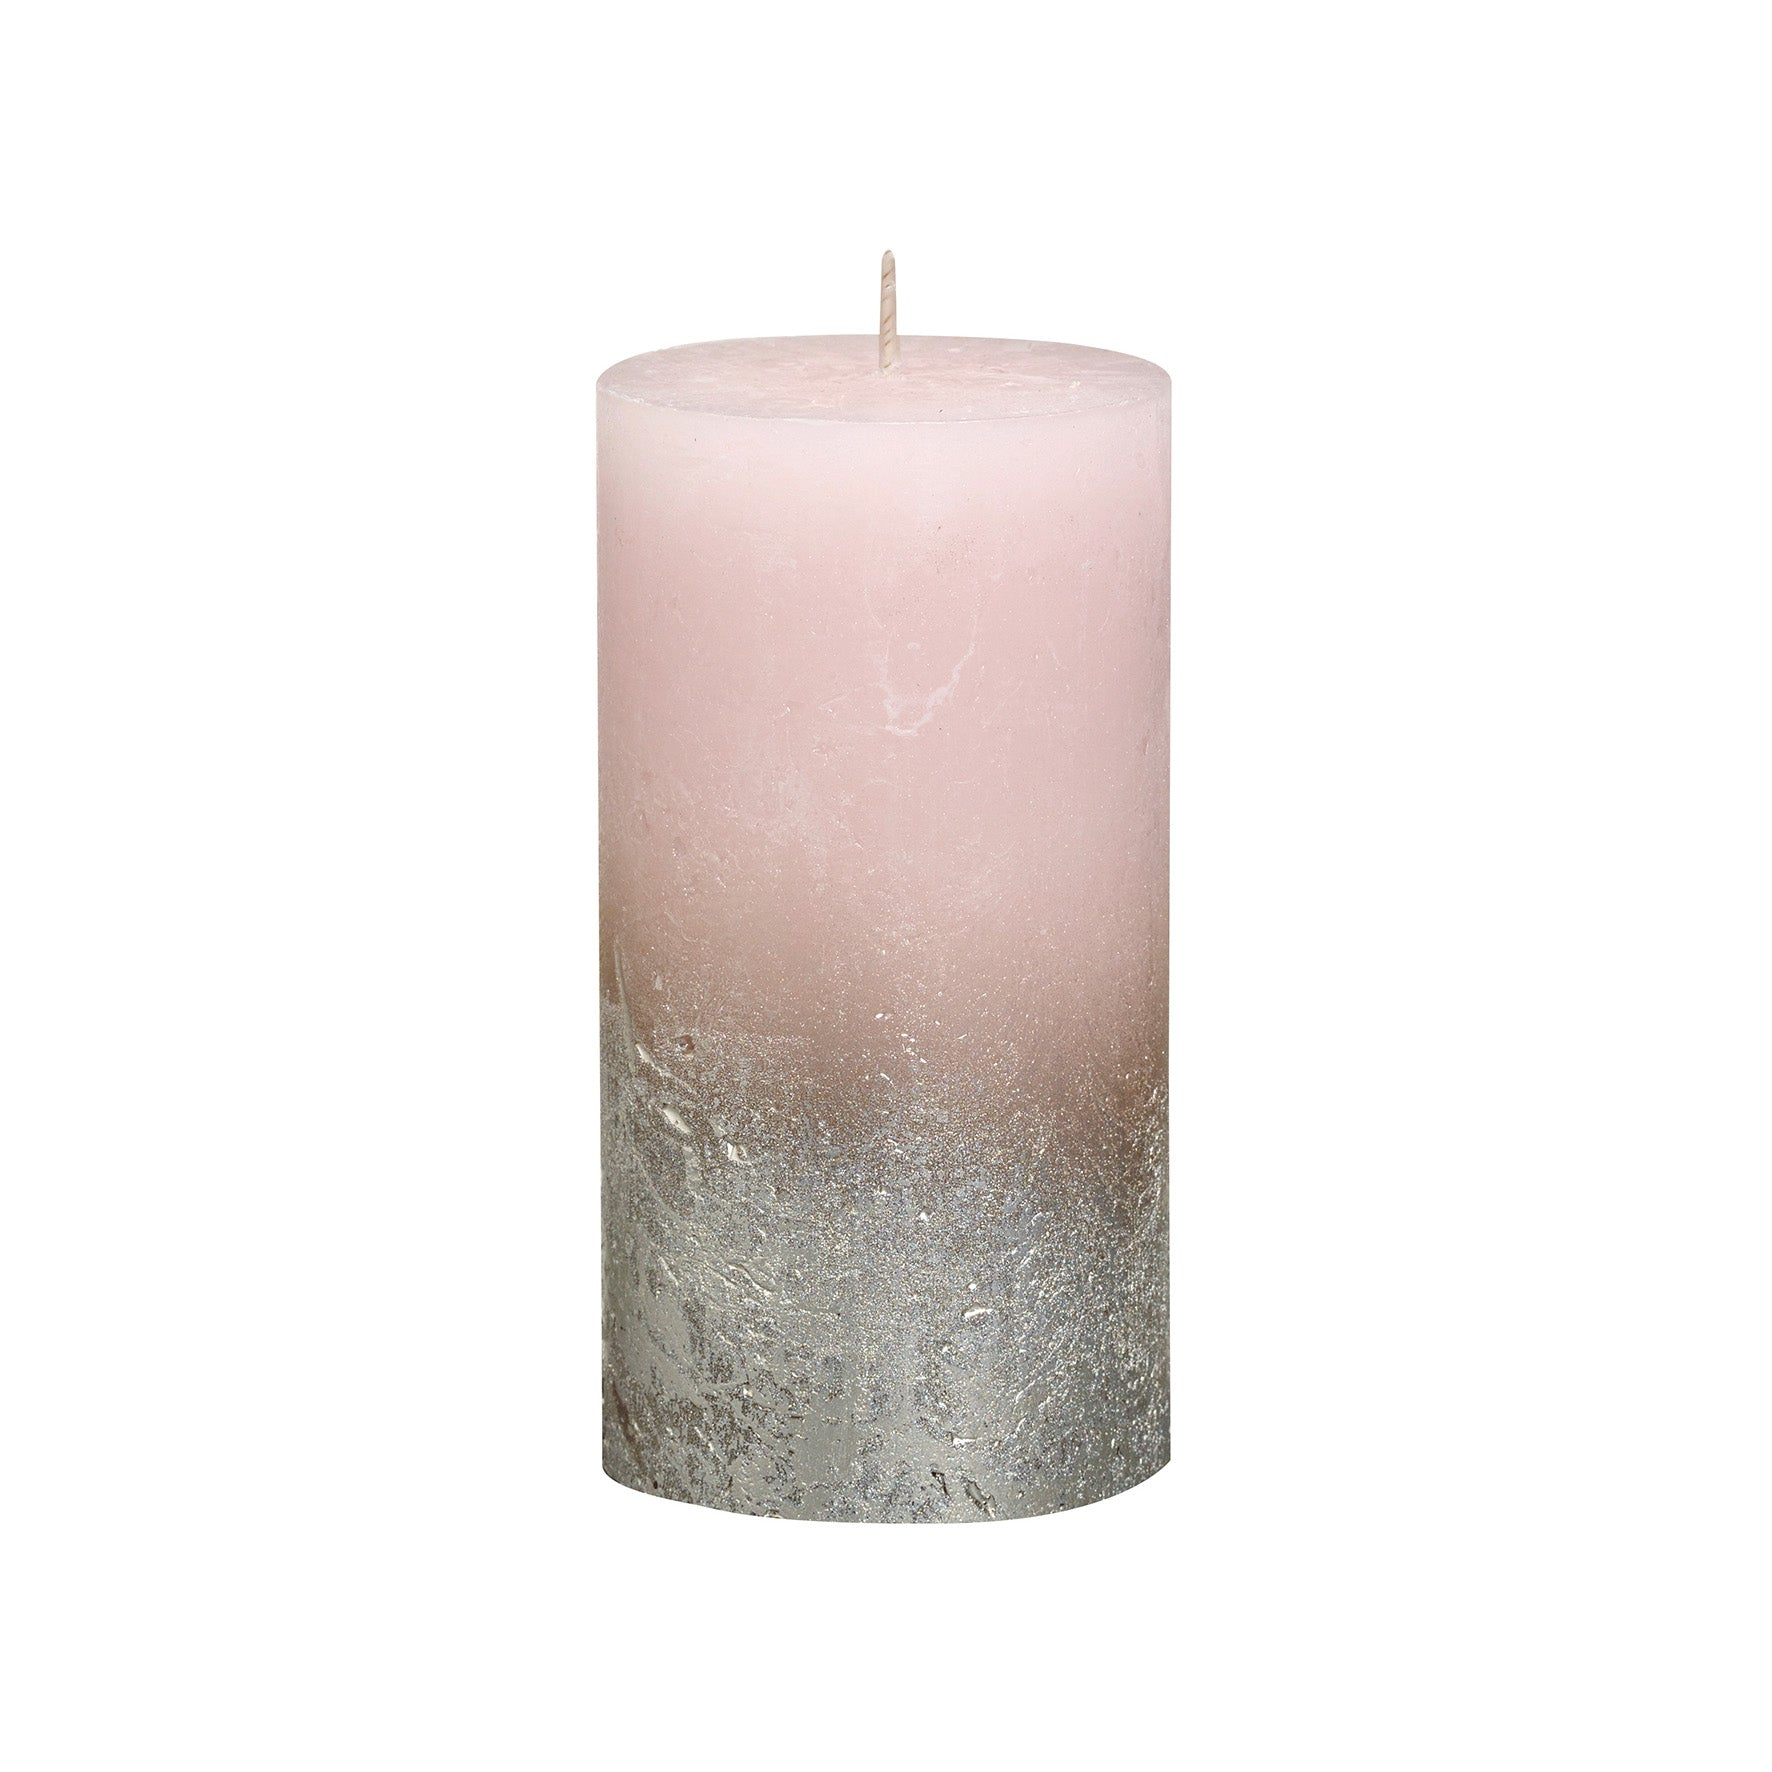 Rustic Ombre Metallic Candle - Faded Champagne Pink